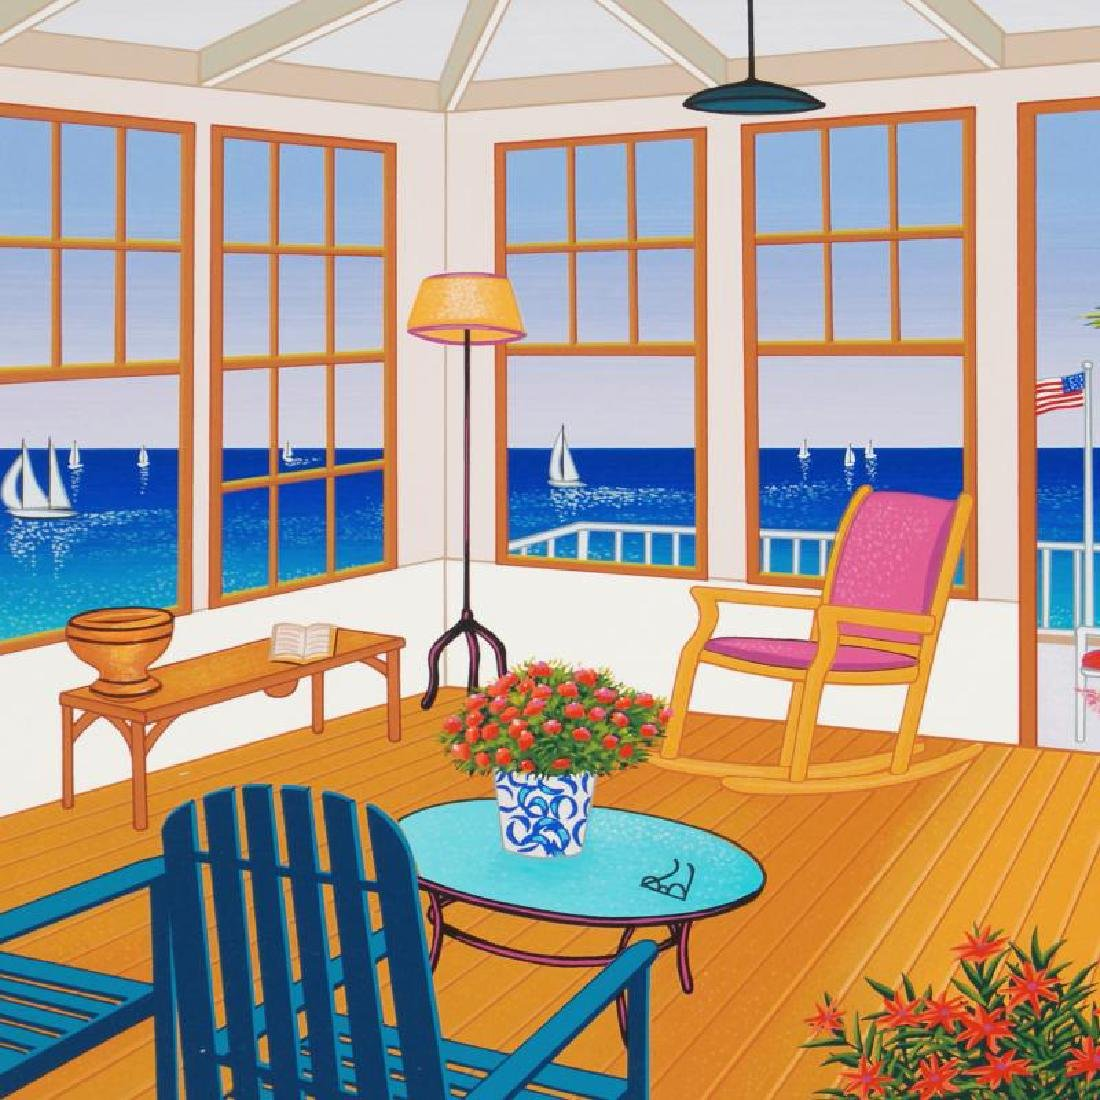 New England Villa Limited Edition Serigraph by Fanch - 2